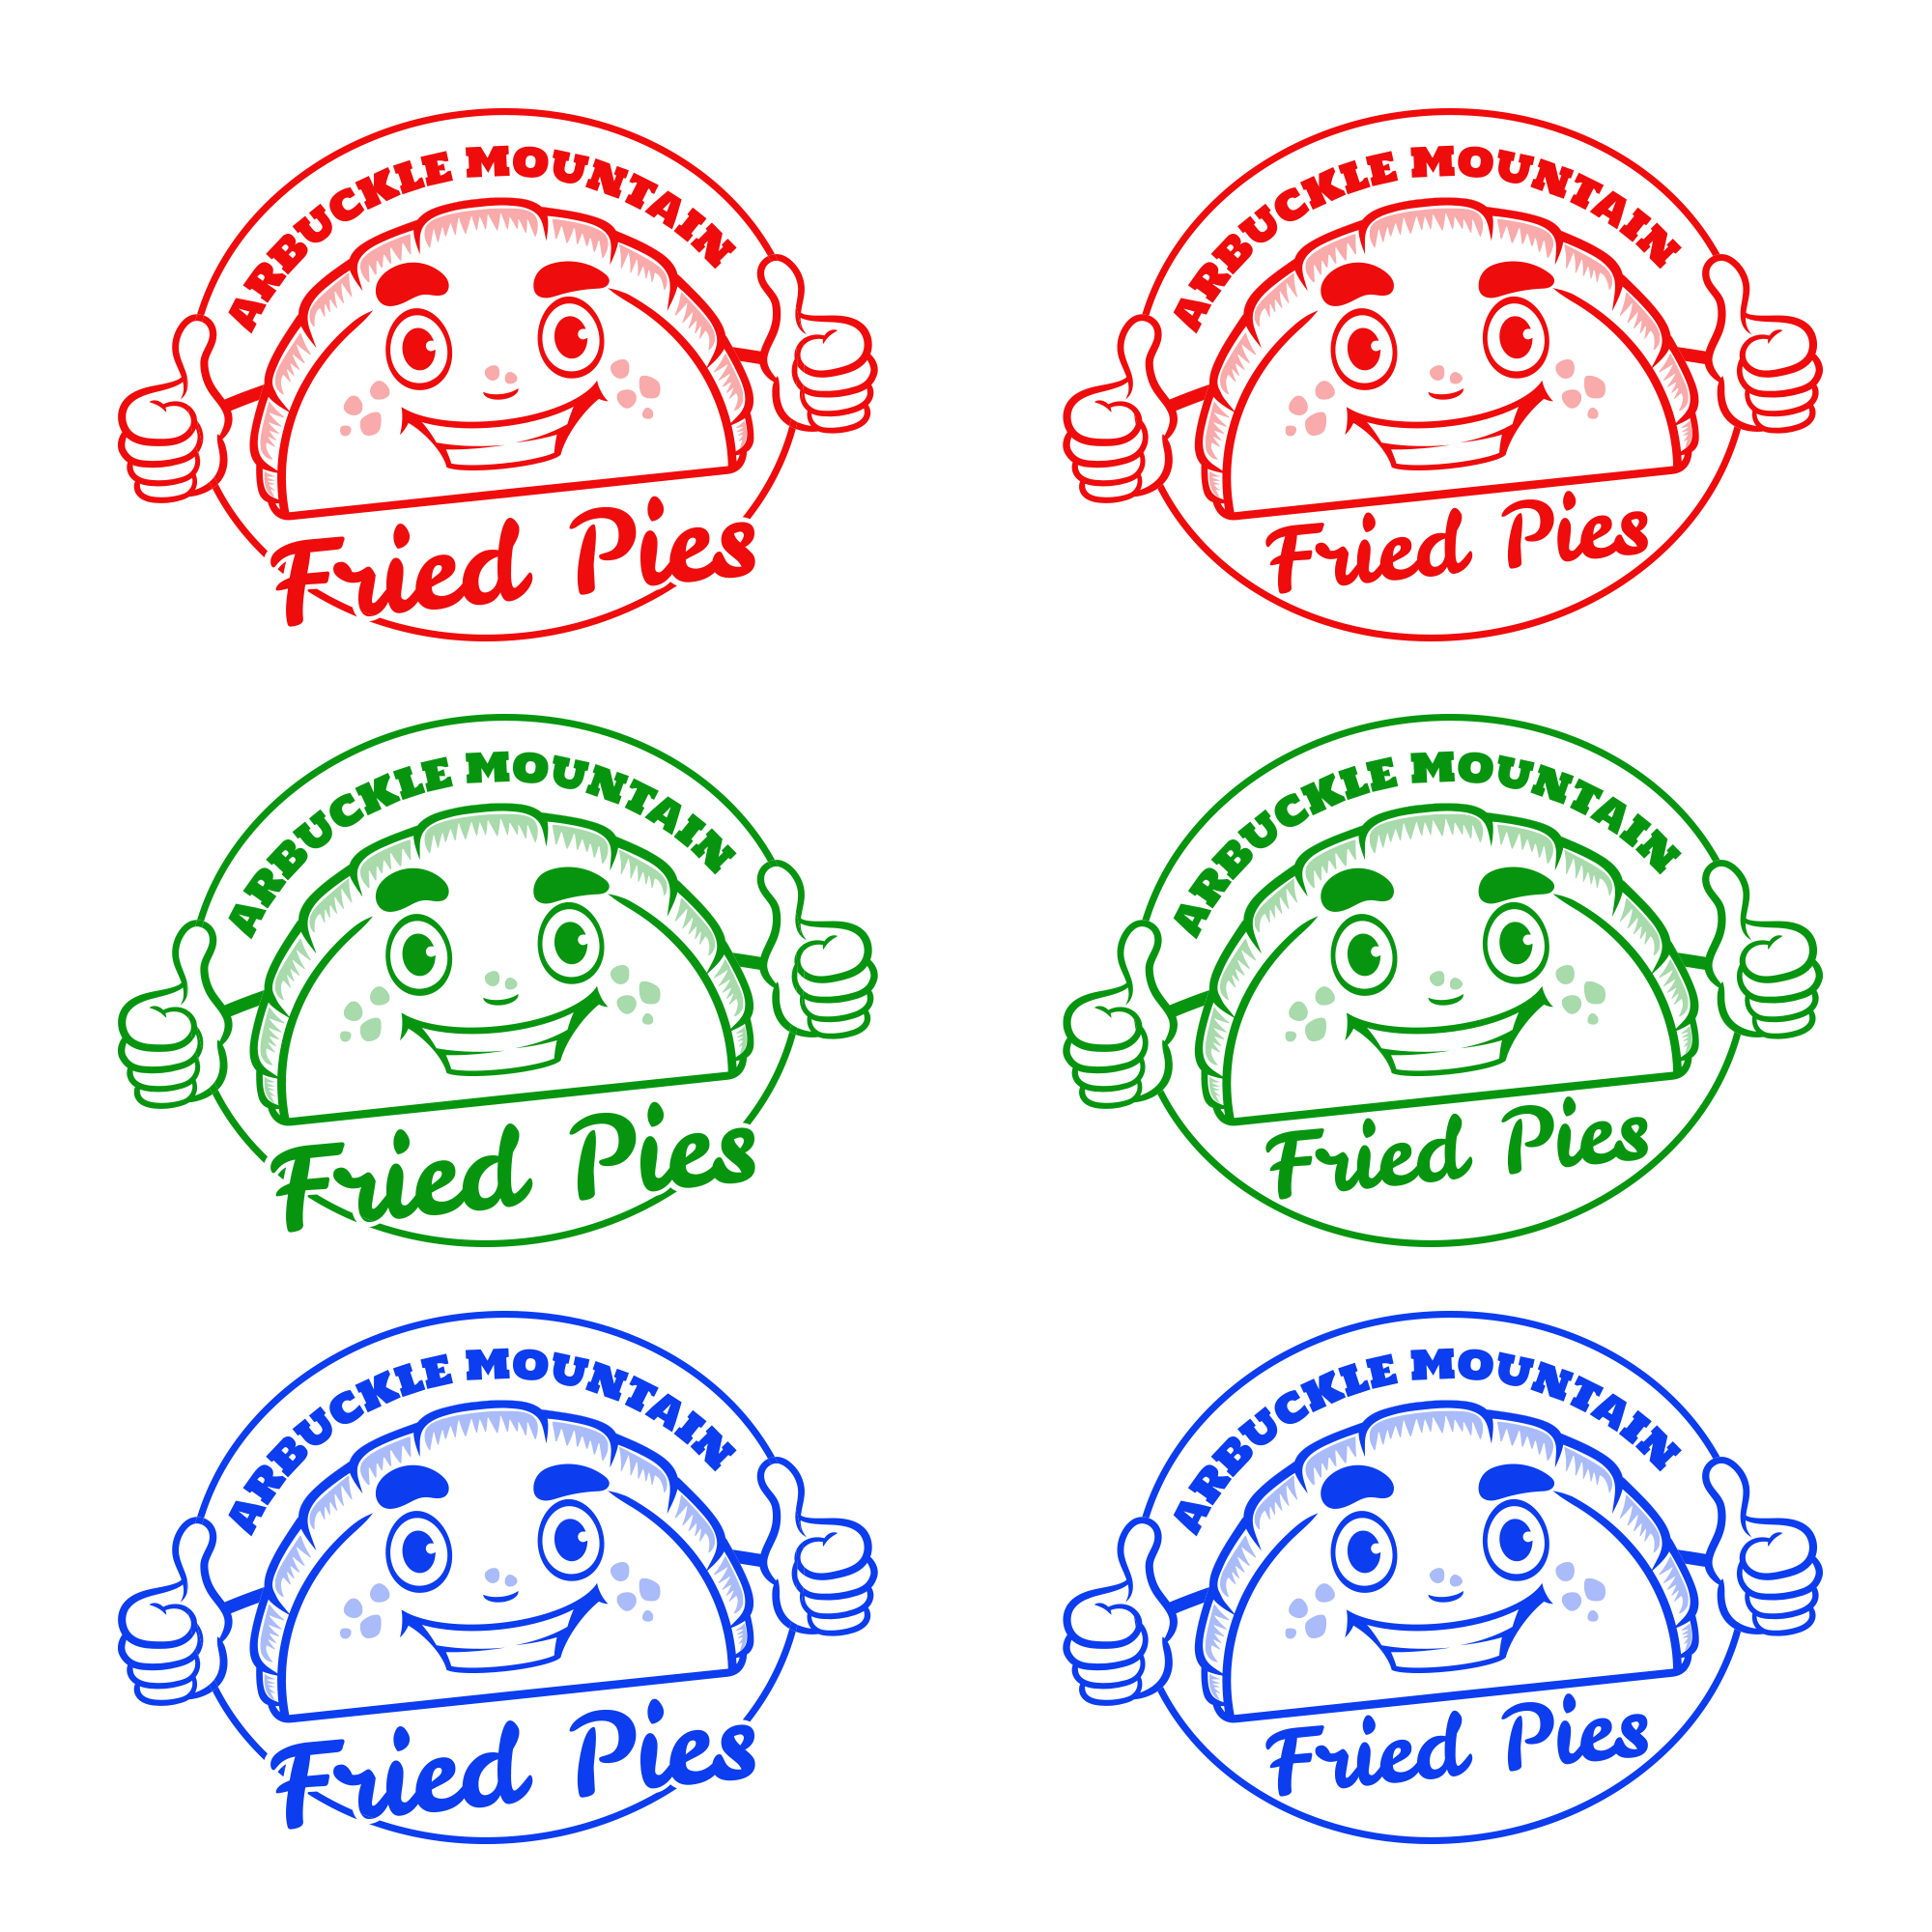 Design a logo for a nationally recognized on major networks fried pie shop.